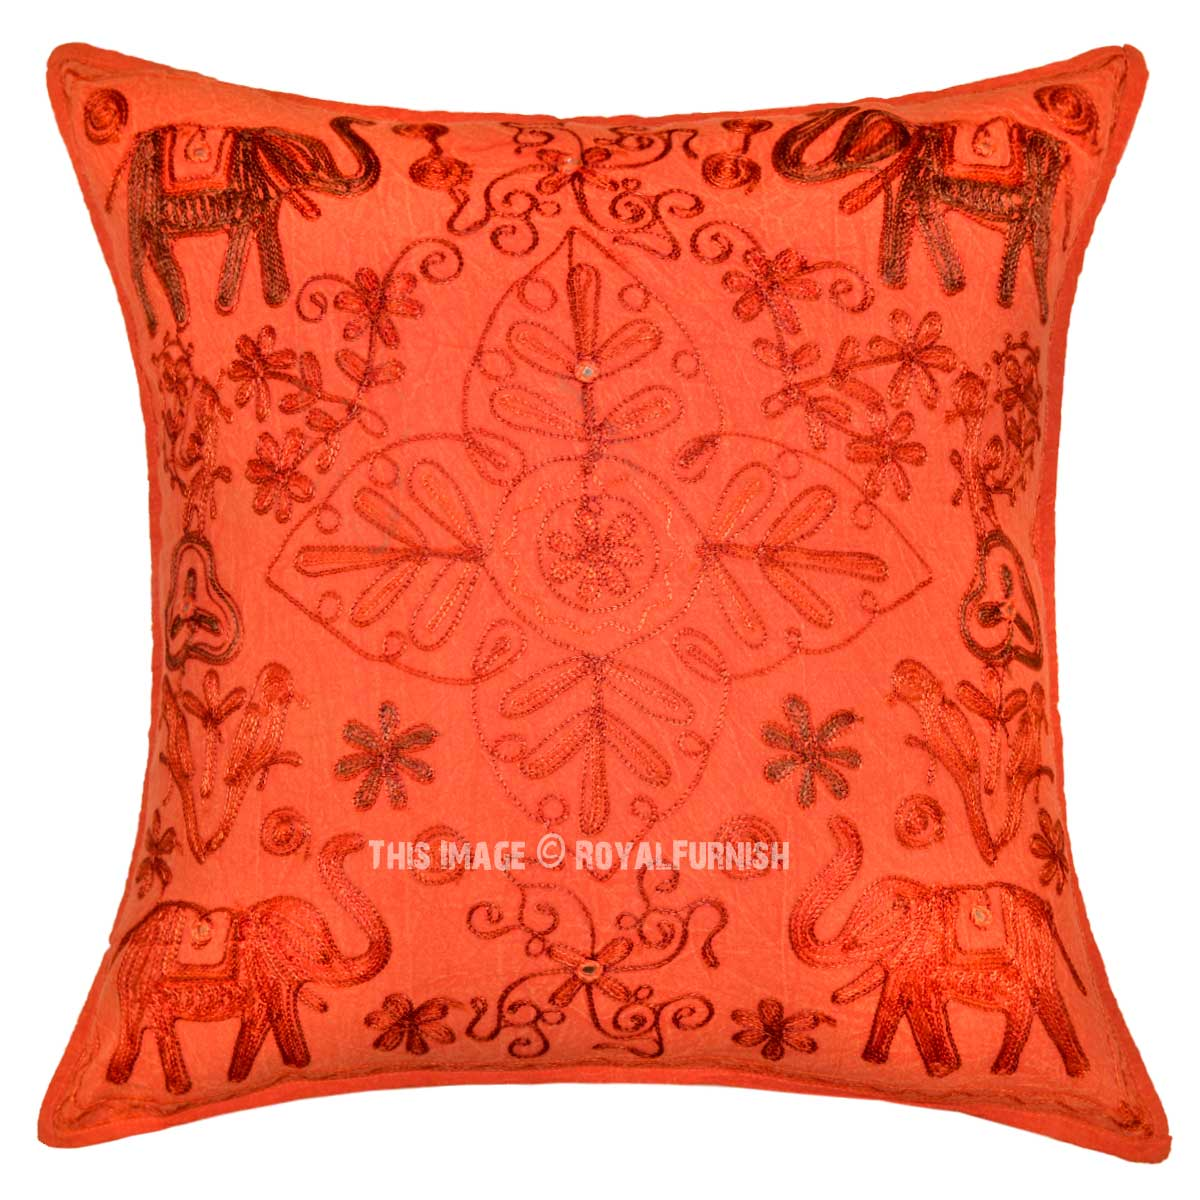 Animal birds hand embroidered cotton throw pillow